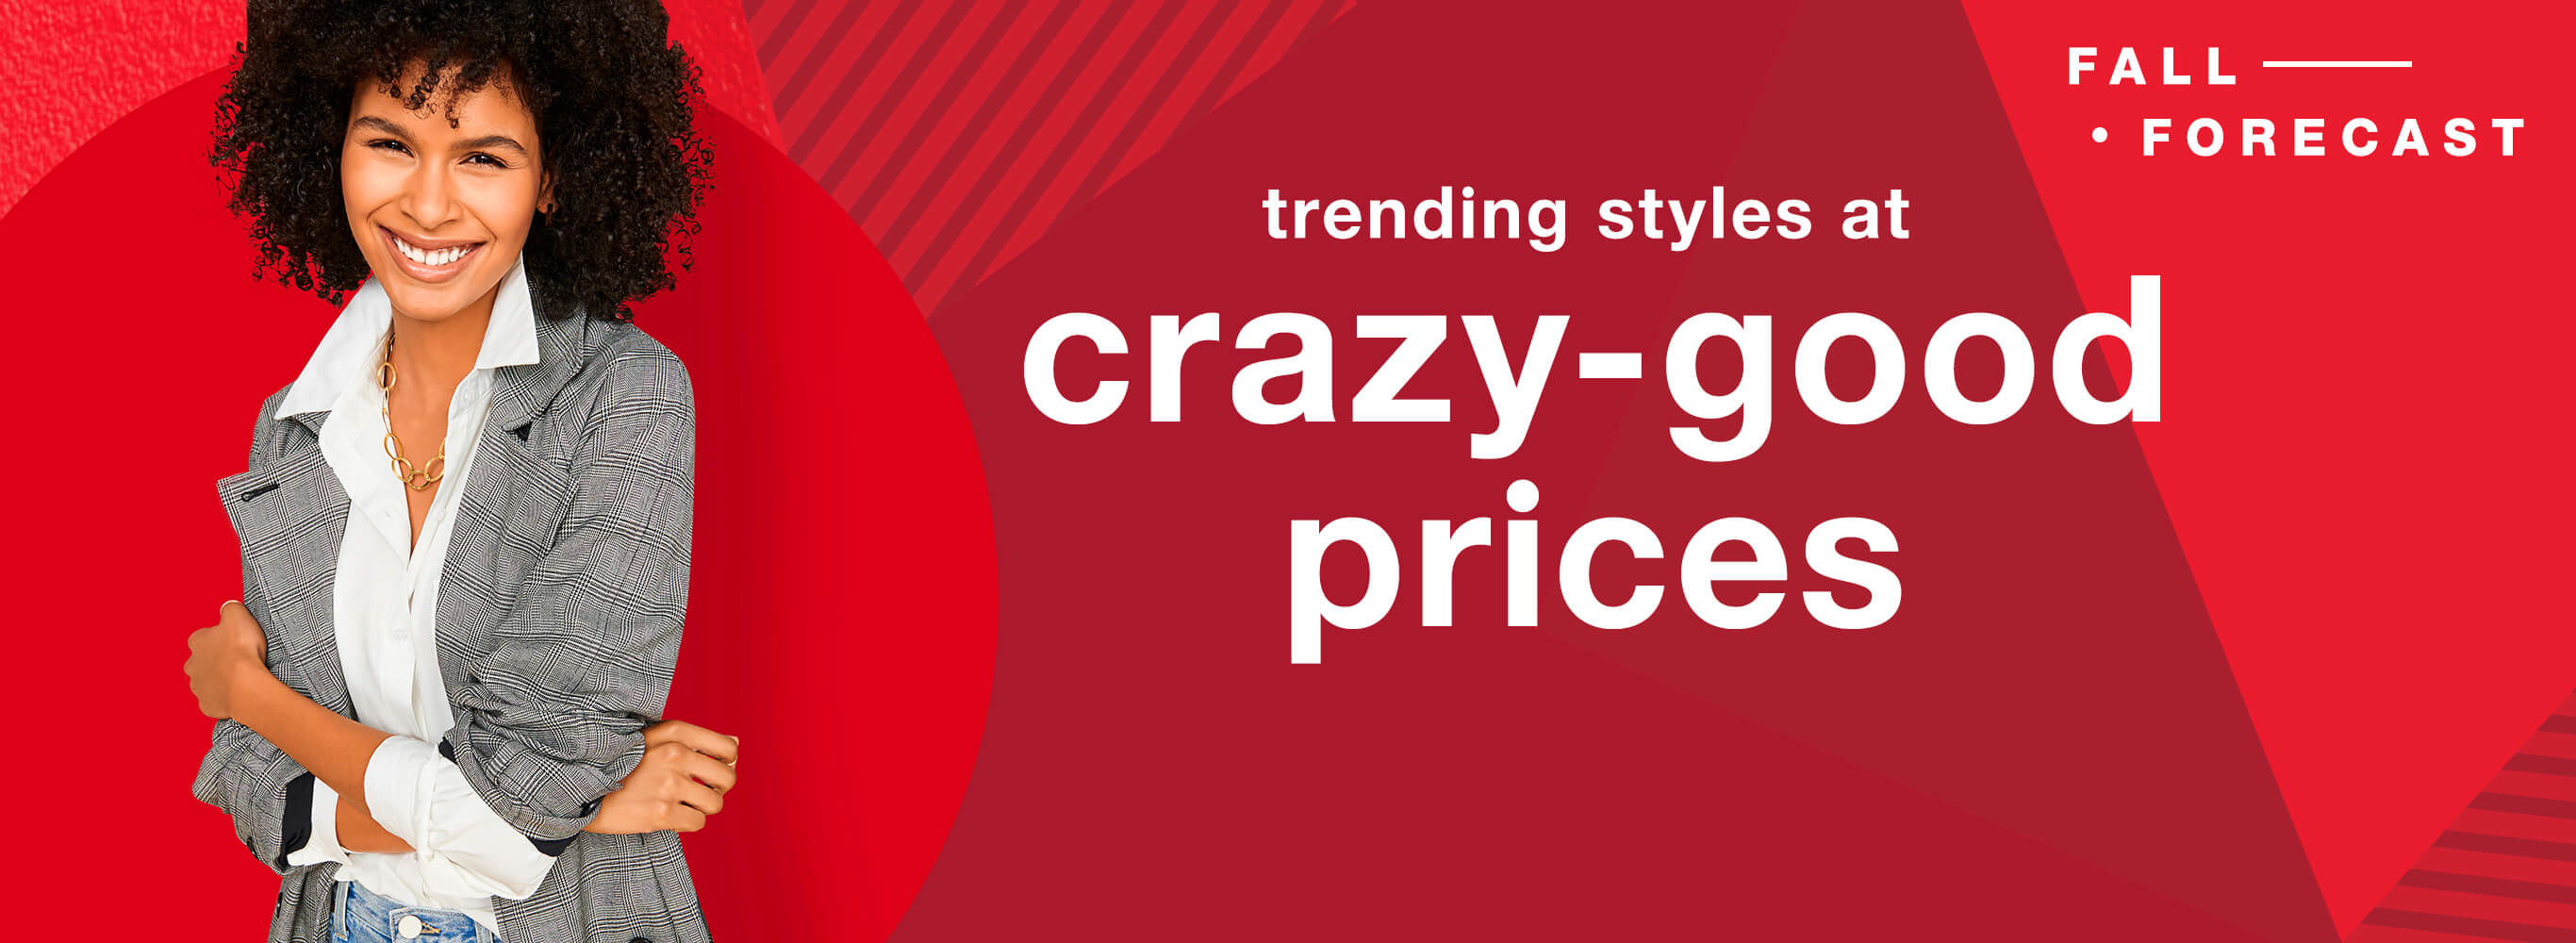 Fall Forecast: Trending Styles at Crazy-Good Prices